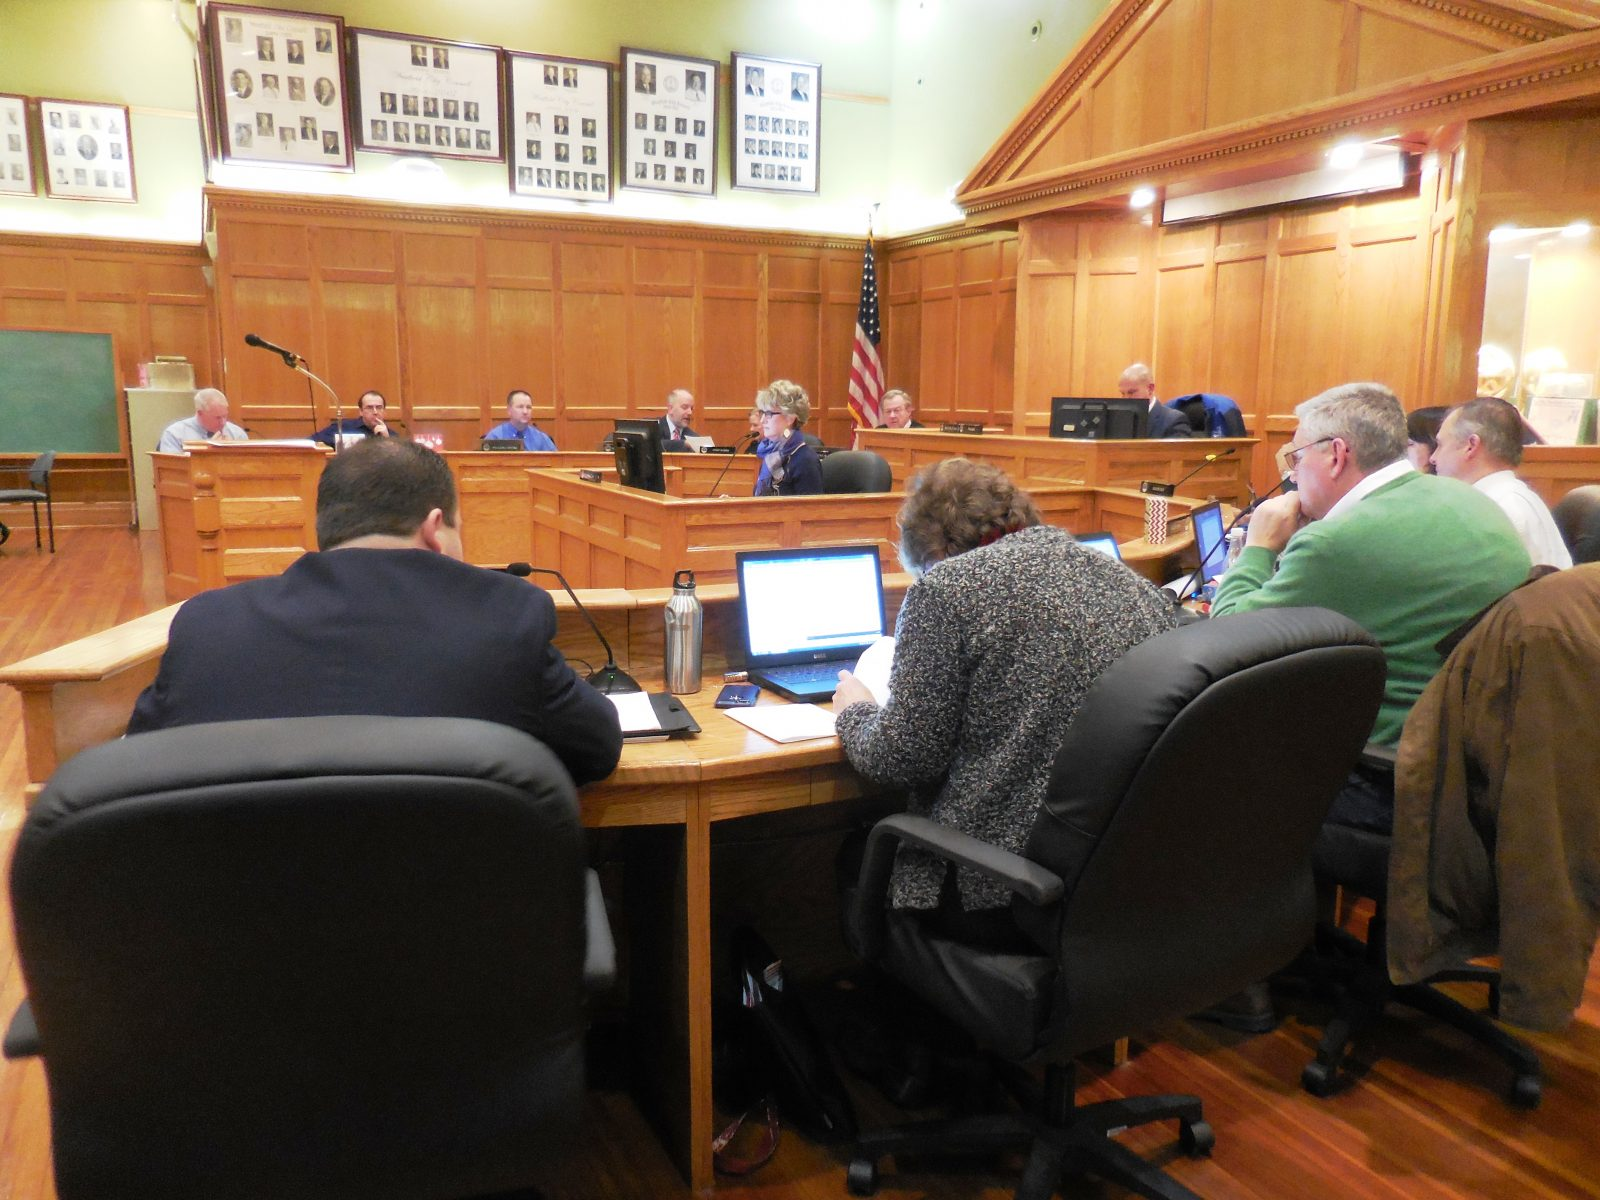 Second vote on smoking ban unanimous